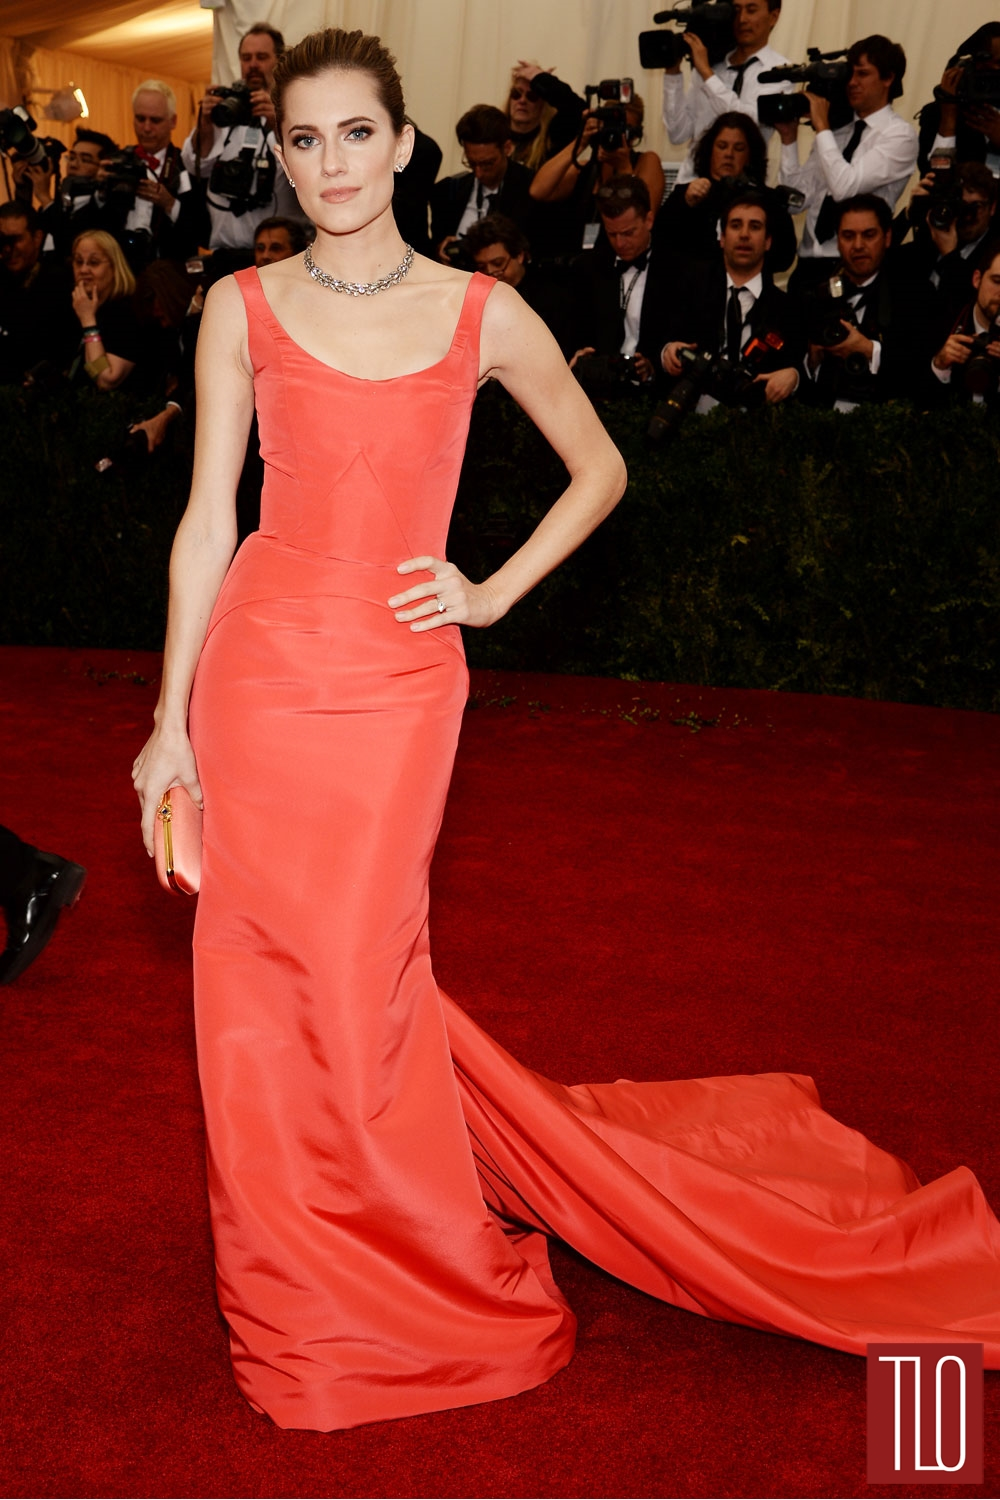 Allison-Williams-ODLR-Met-Gala-2014-Tom-Lorenzo-Site-TLO-1